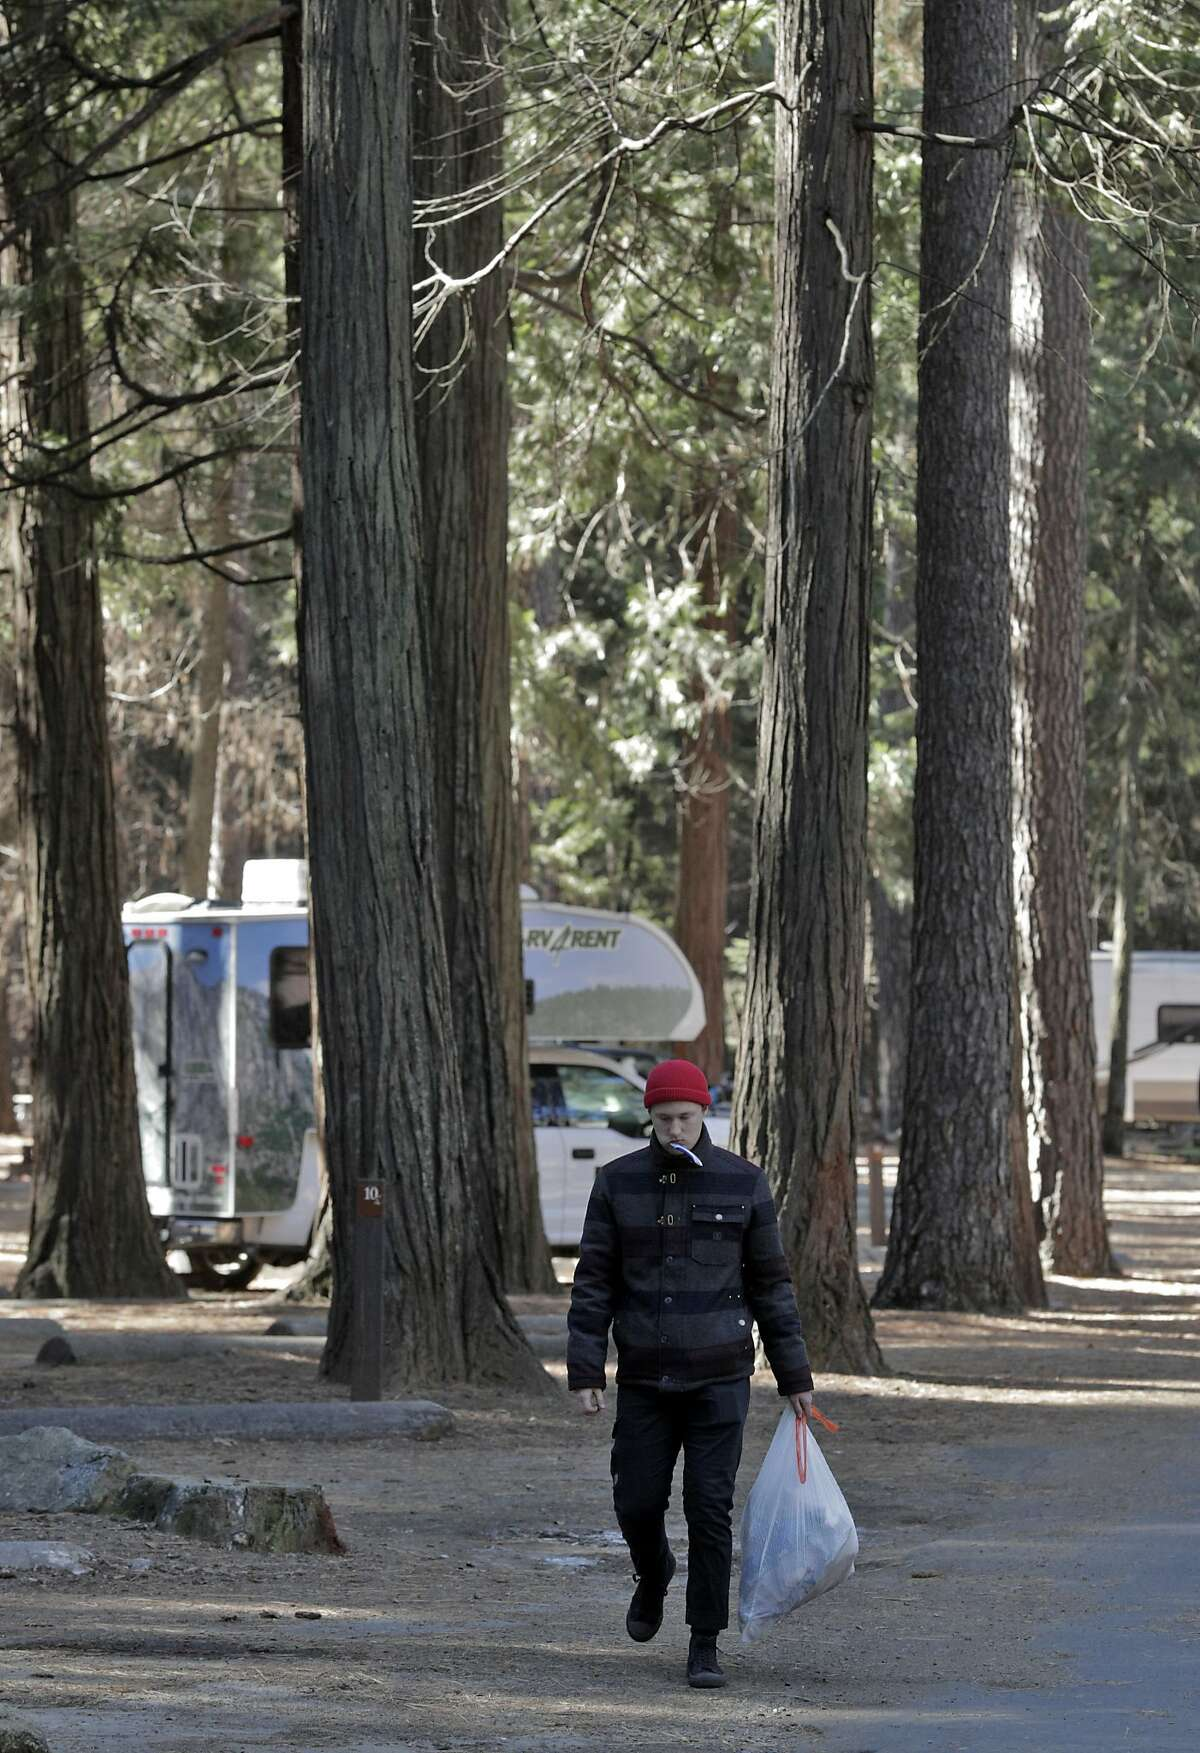 Seth Williams from Costa Mesa carries his garbage to a trash can in Upper Pines Campground, the only one open in Yosemite, during a partial government shutdown that has Yosemite National Park without key services including trash removal and some bathroom services in Yosemite, Calif., on Wednesday, January 2, 2019.